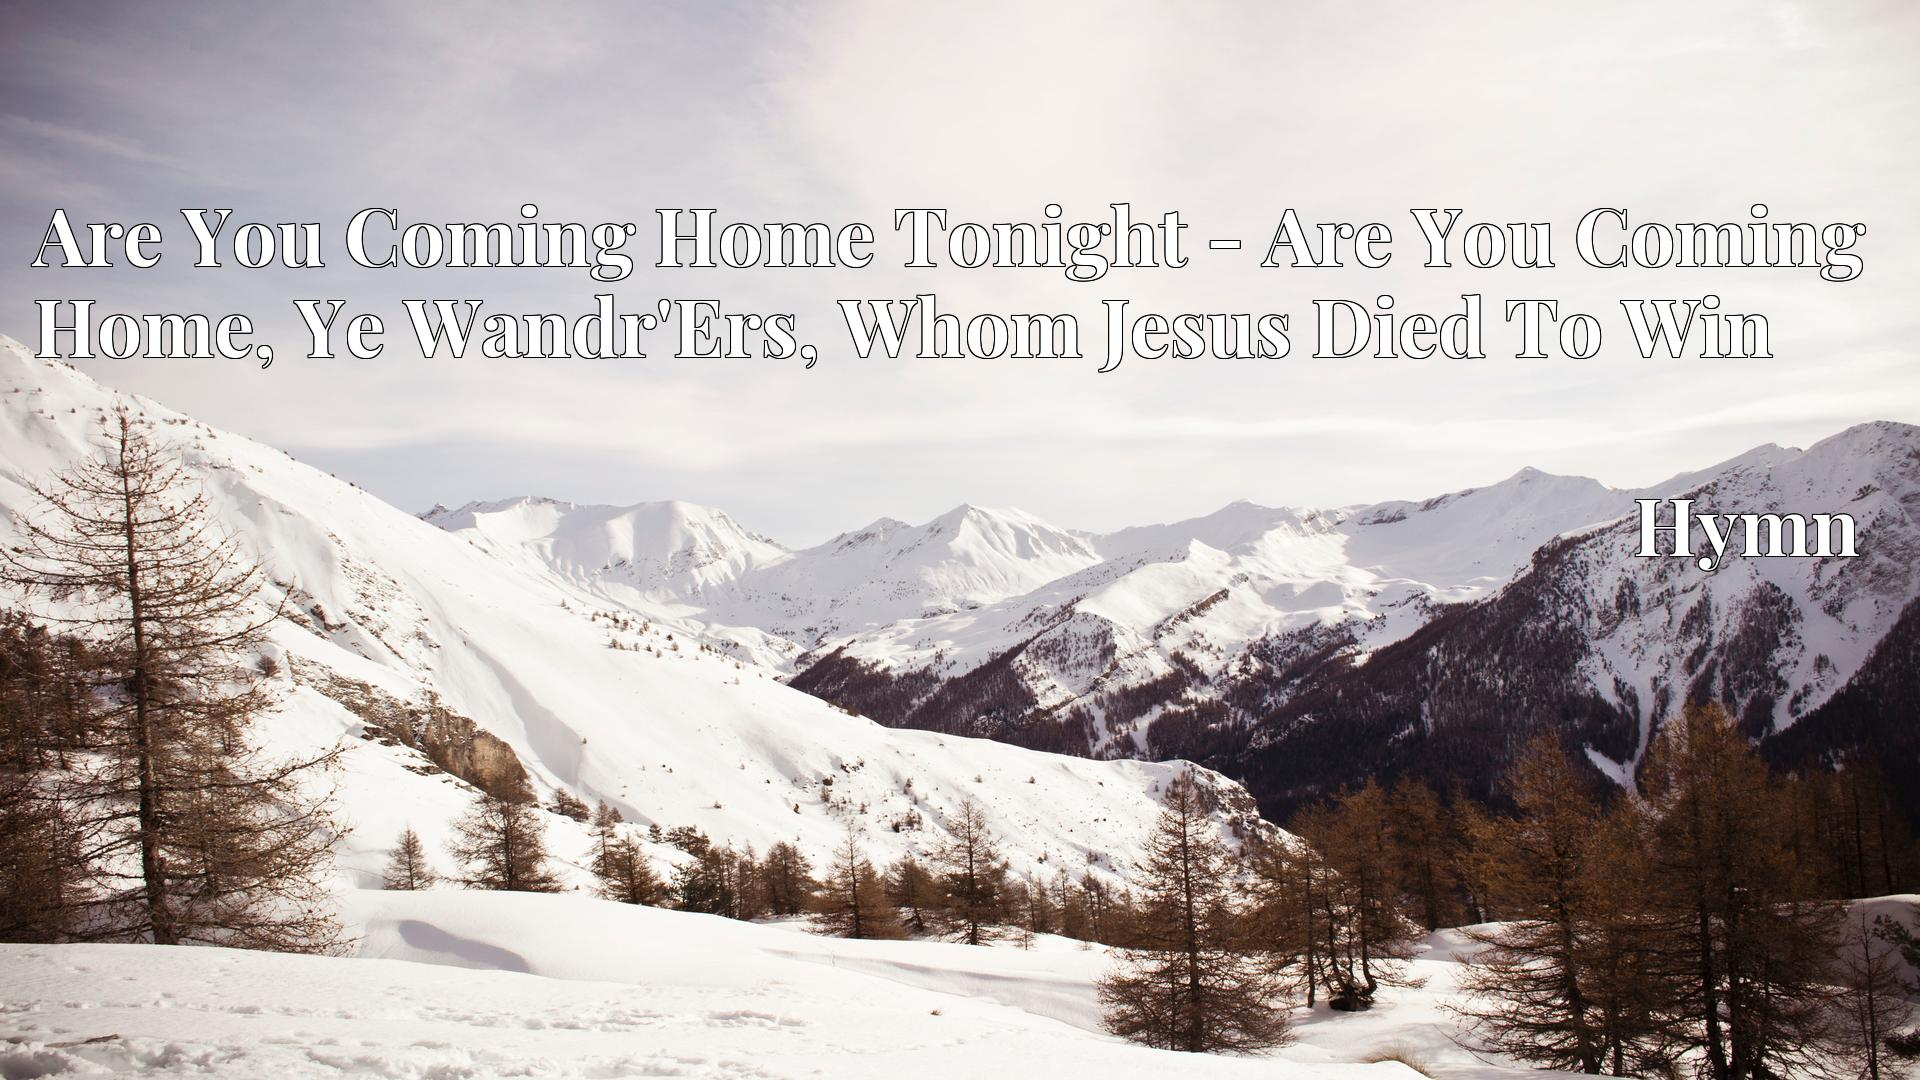 Are You Coming Home Tonight - Are You Coming Home, Ye Wandr'Ers, Whom Jesus Died To Win - Hymn